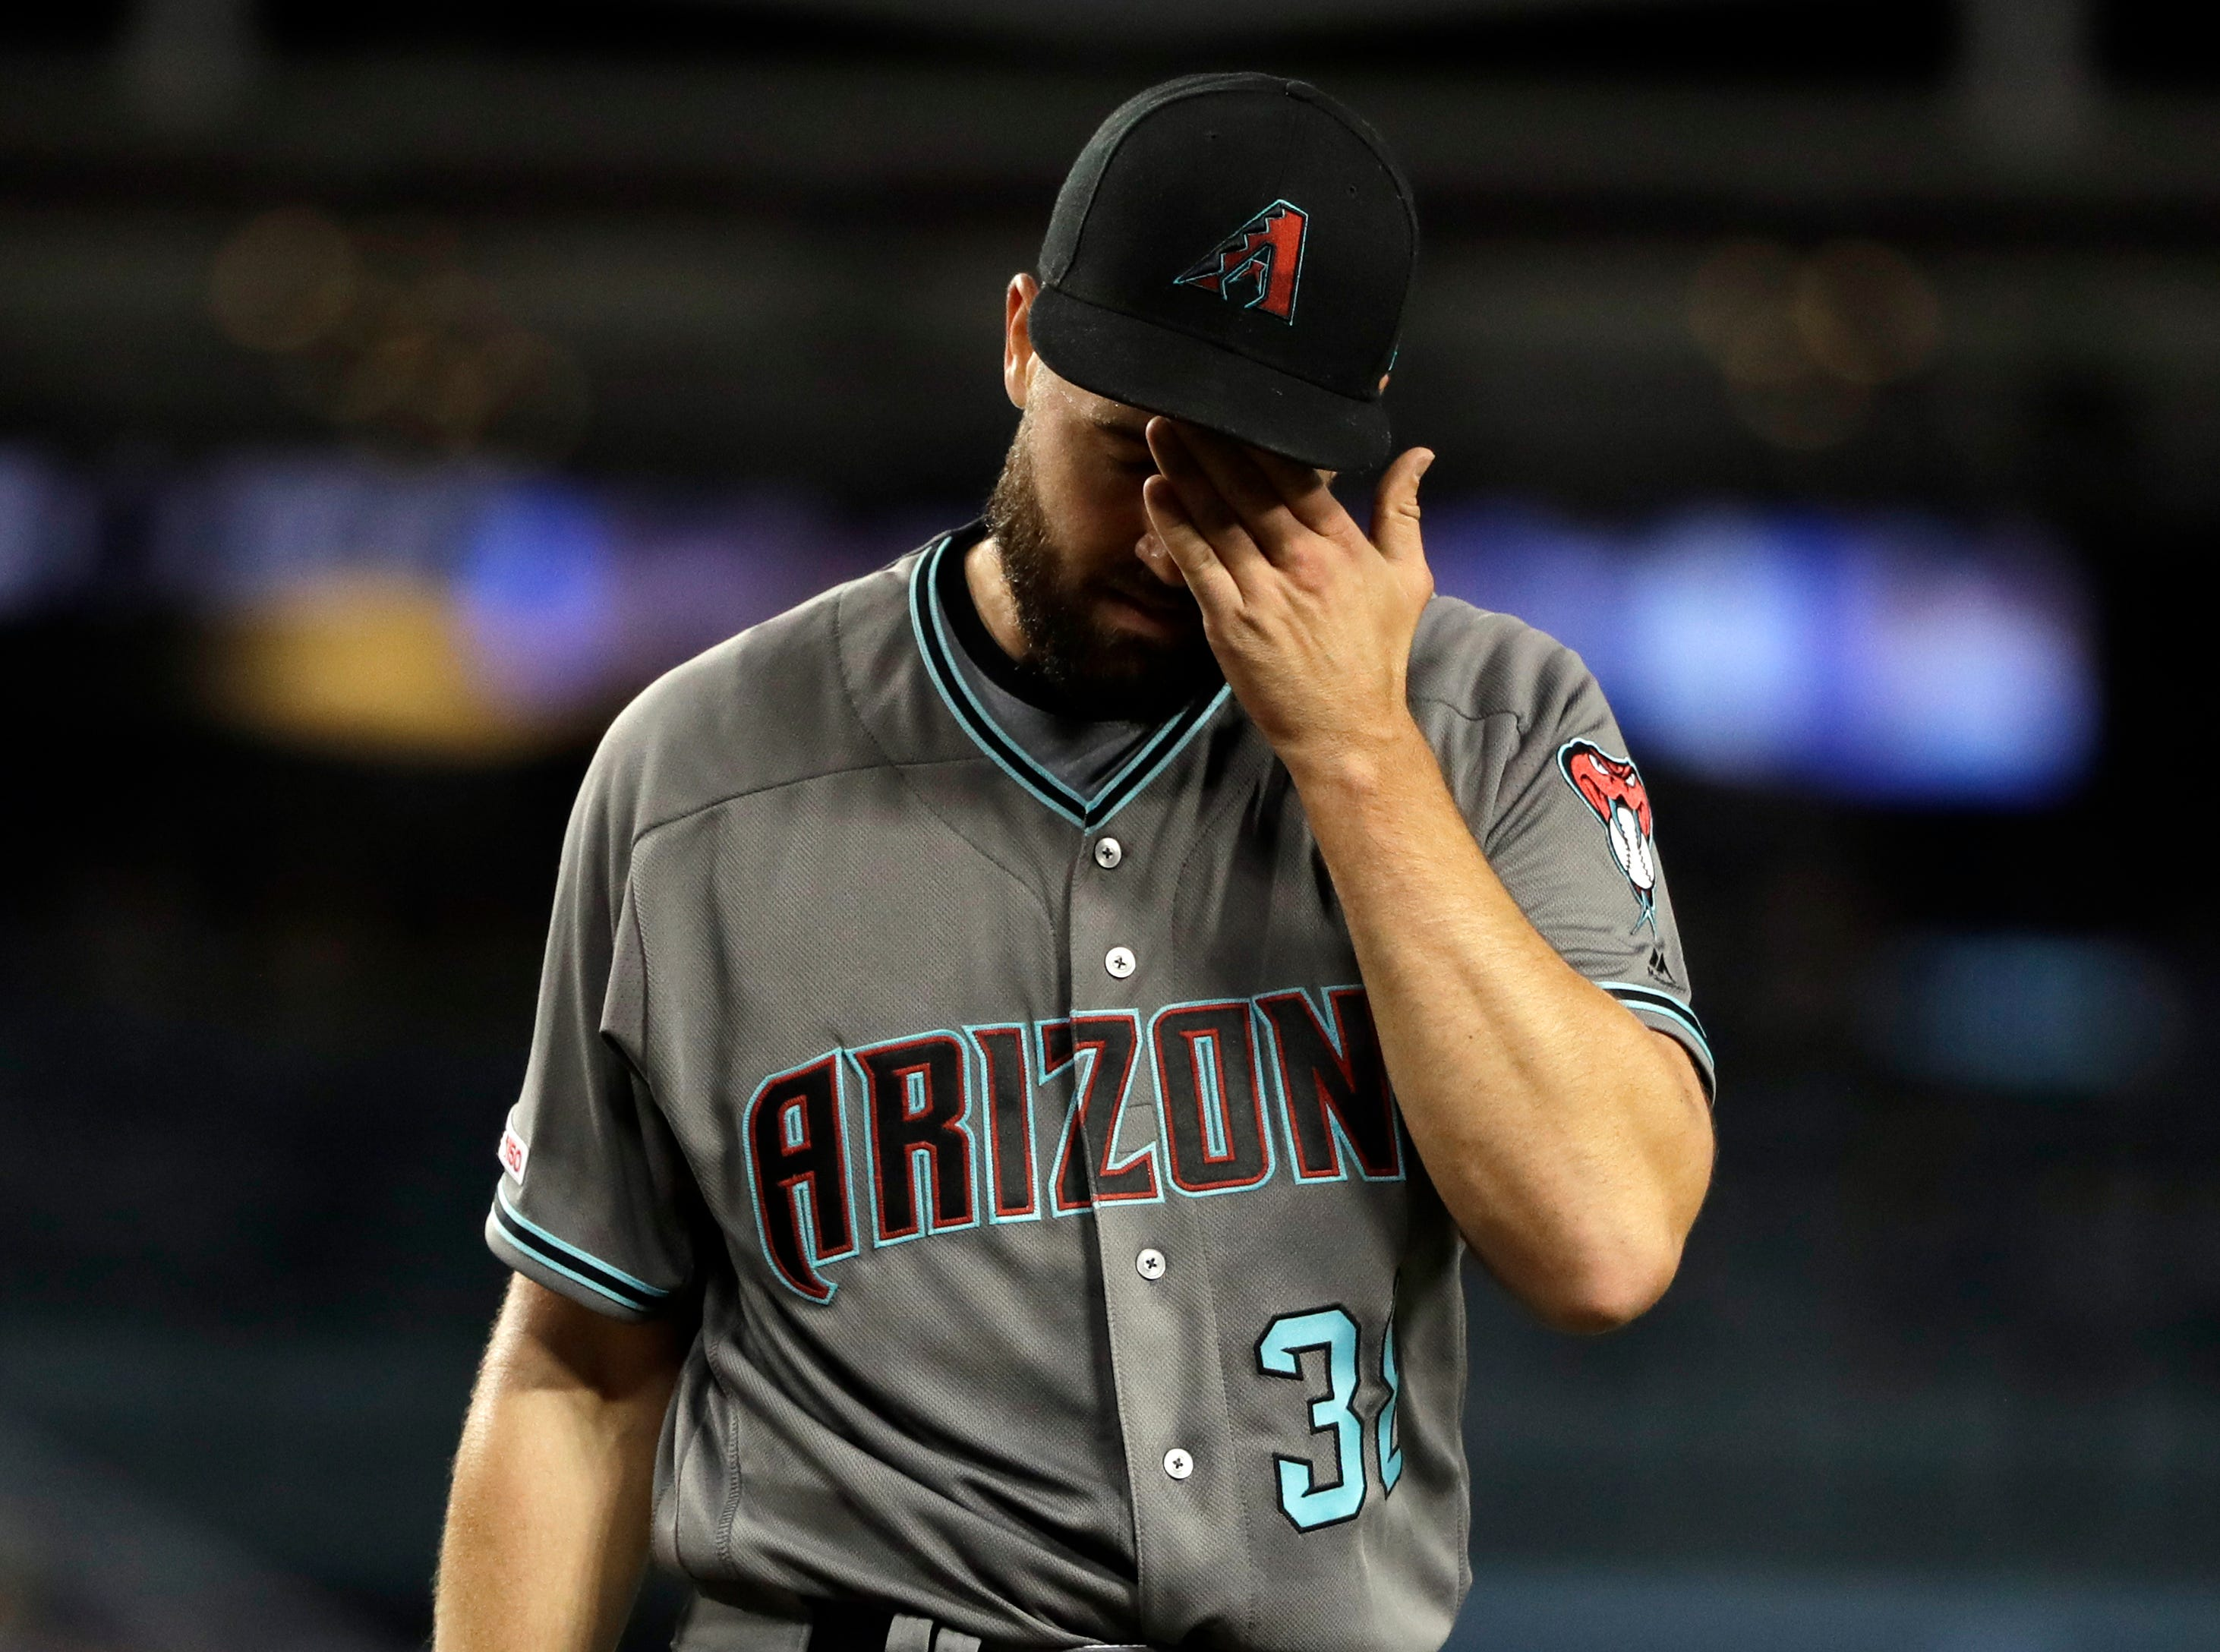 Arizona Diamondbacks starting pitcher Robbie Ray walks off the mound at the end of the third inning of a baseball game against the Los Angeles Dodgers, Friday, March 29, 2019, in Los Angeles. (AP Photo/Marcio Jose Sanchez)